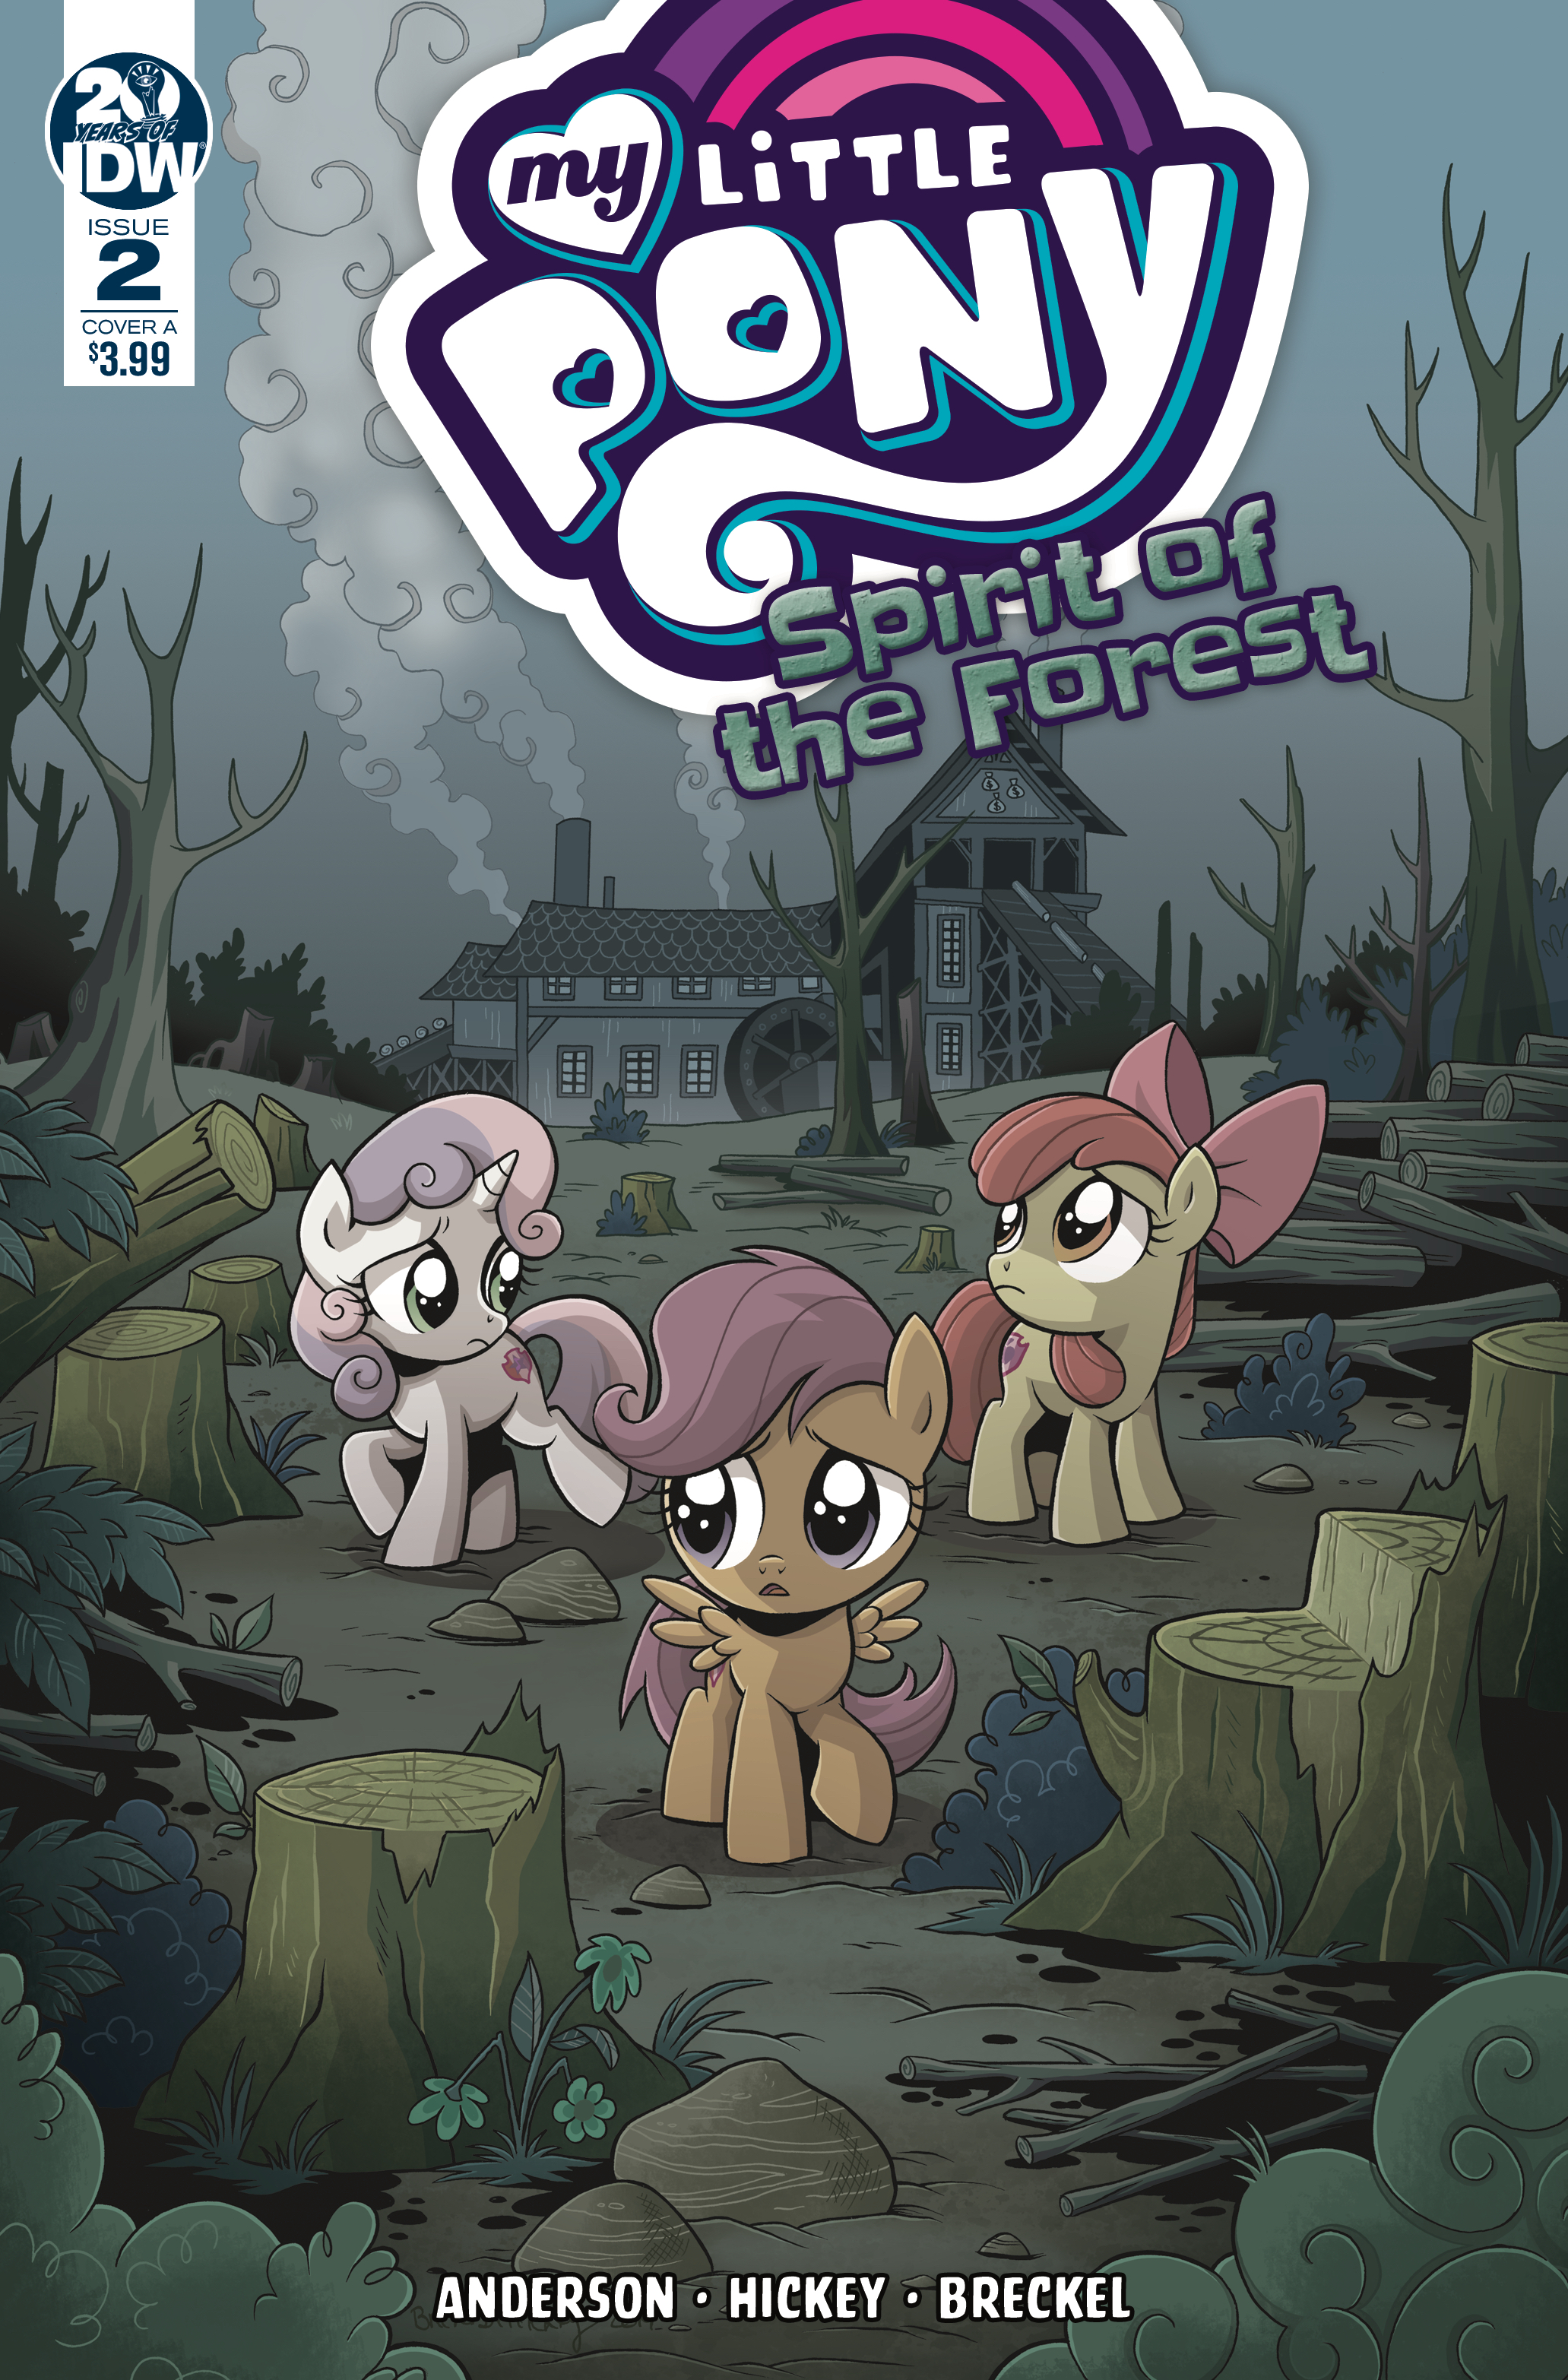 Spirit of the Forest Issue 2